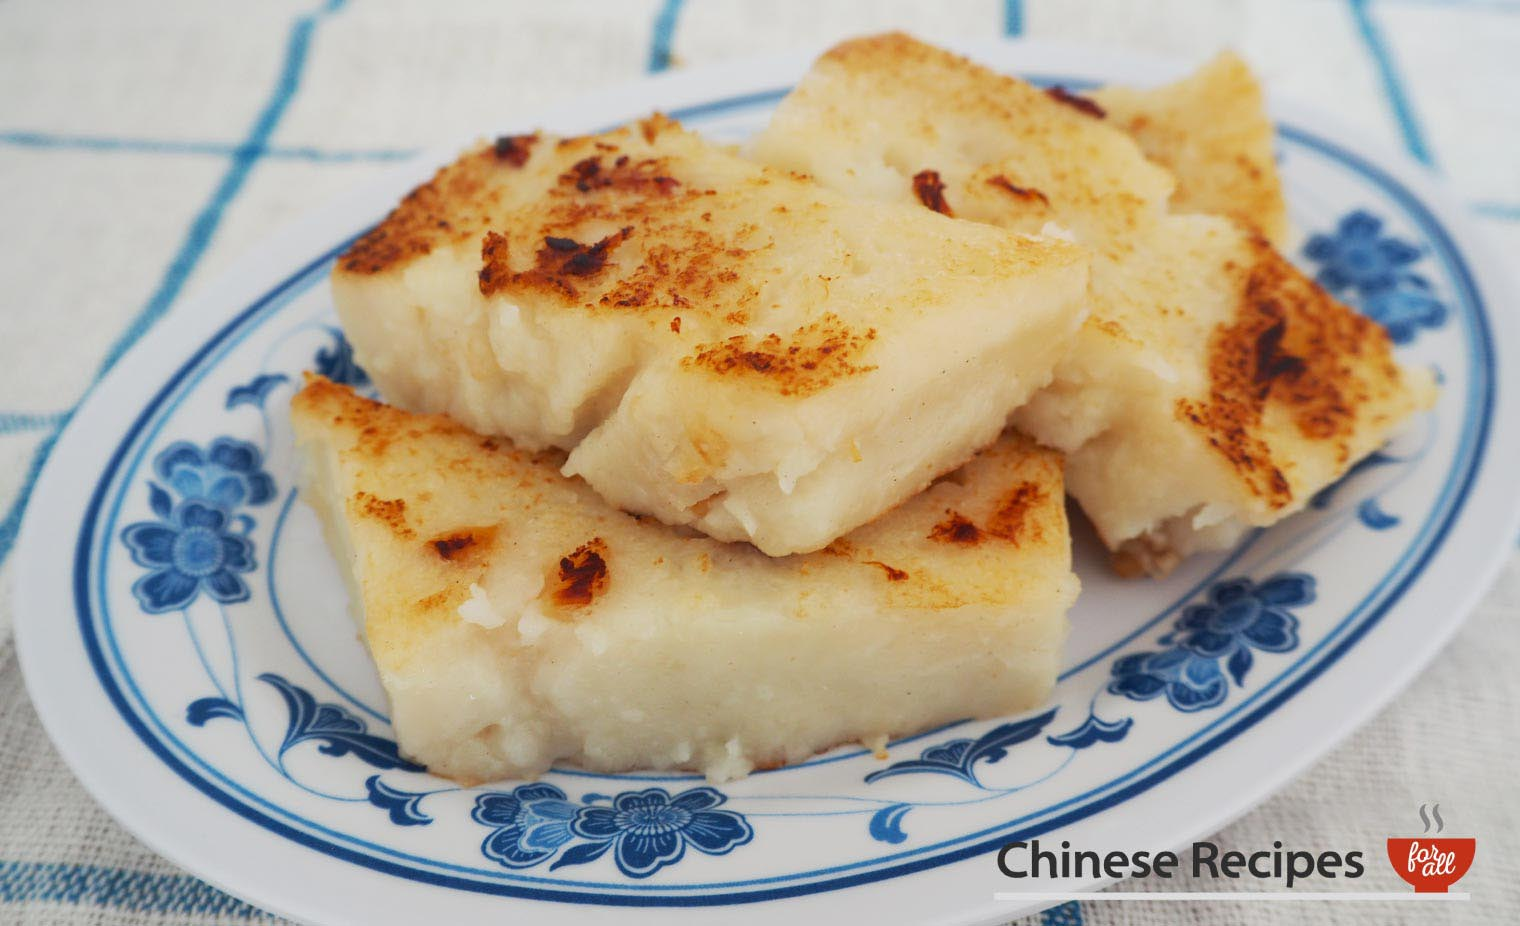 Chinese Turnip Cake (Savoury) - Chinese Recipes For All